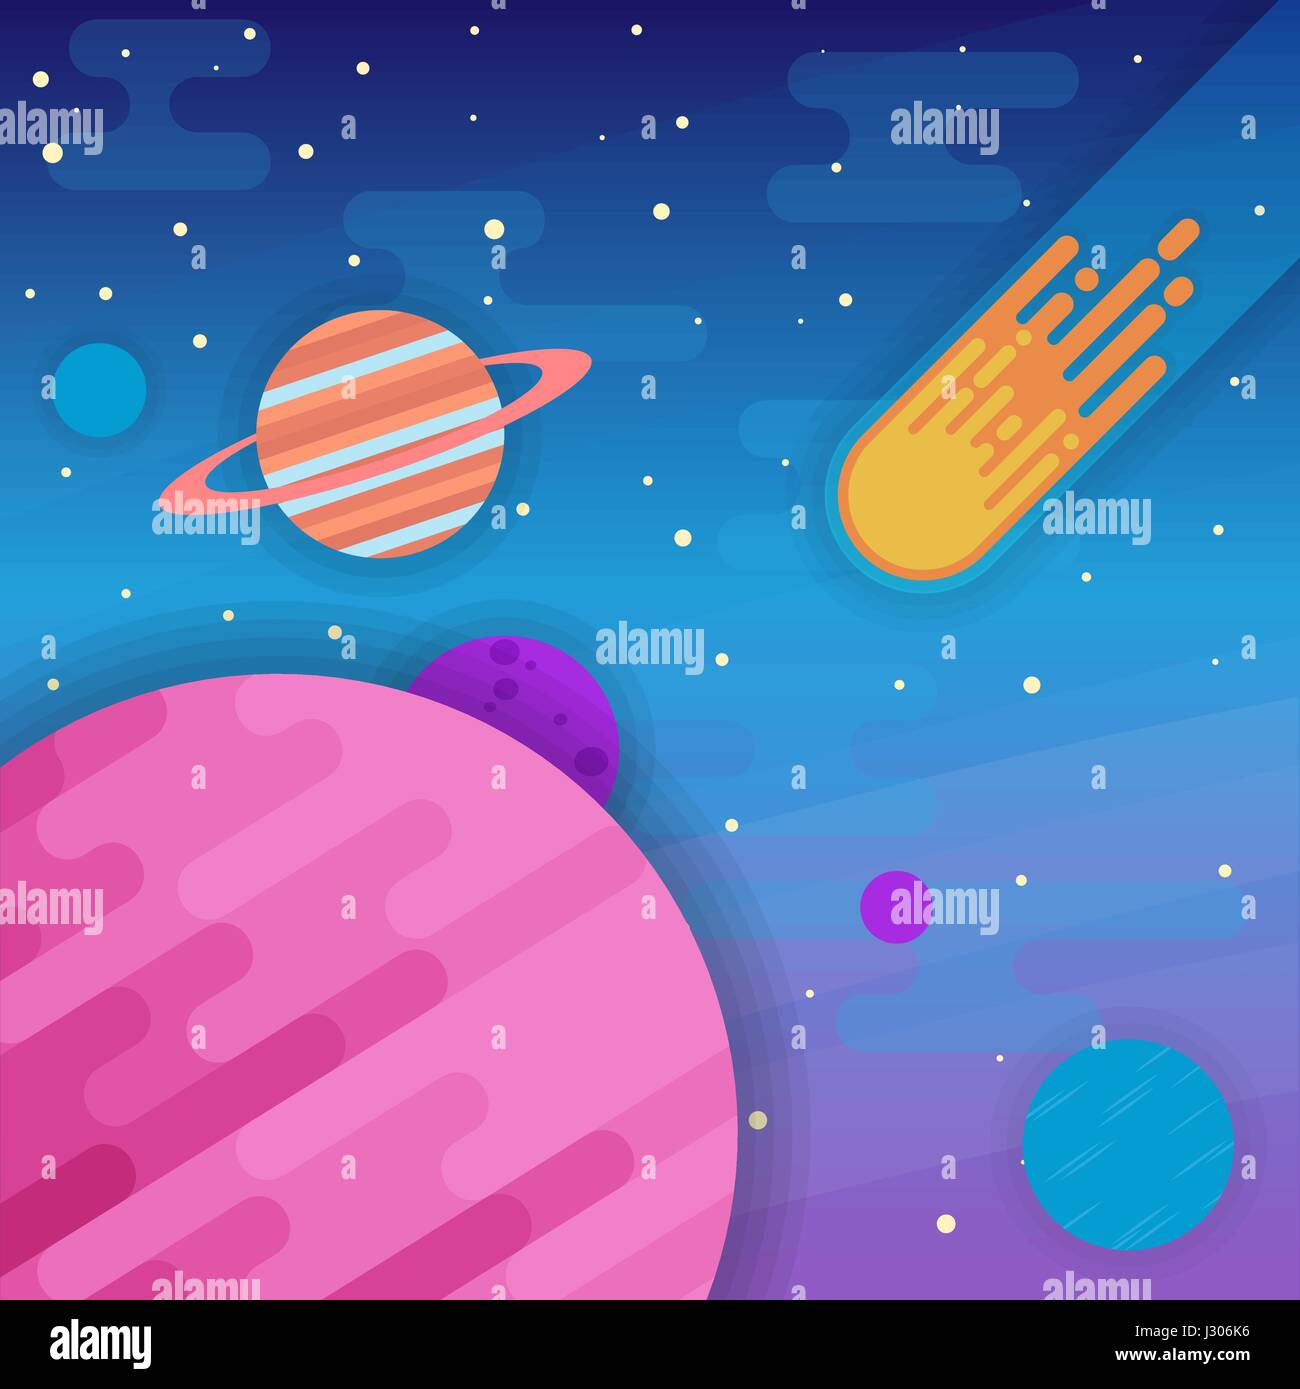 Space elements - planets, rings, comet, stars in flat style - Stock Image